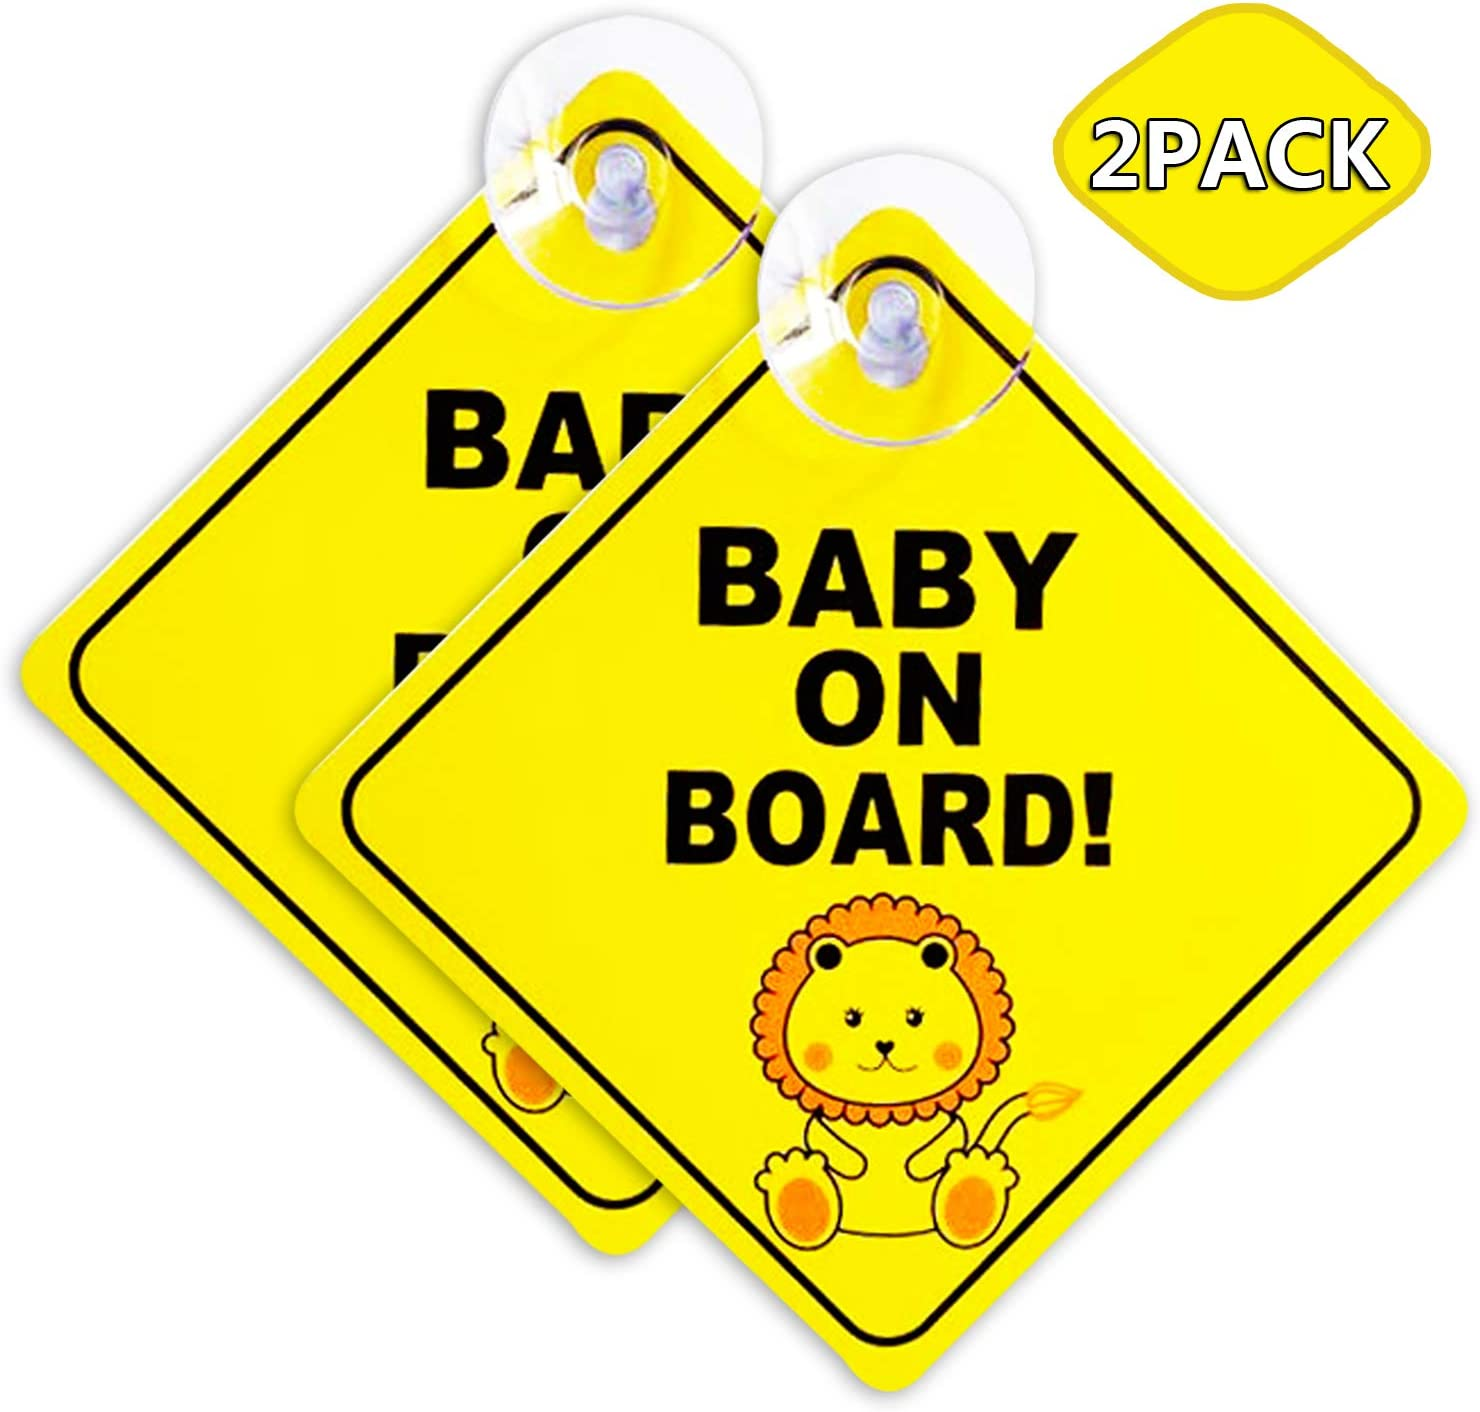 Removable Cute Diamond Shape Little Lion Design Baby on Board Safety Warning Sticker Acehome 2 Pack Baby On Board Sign For Car With 4CM Bigger Suction Cup